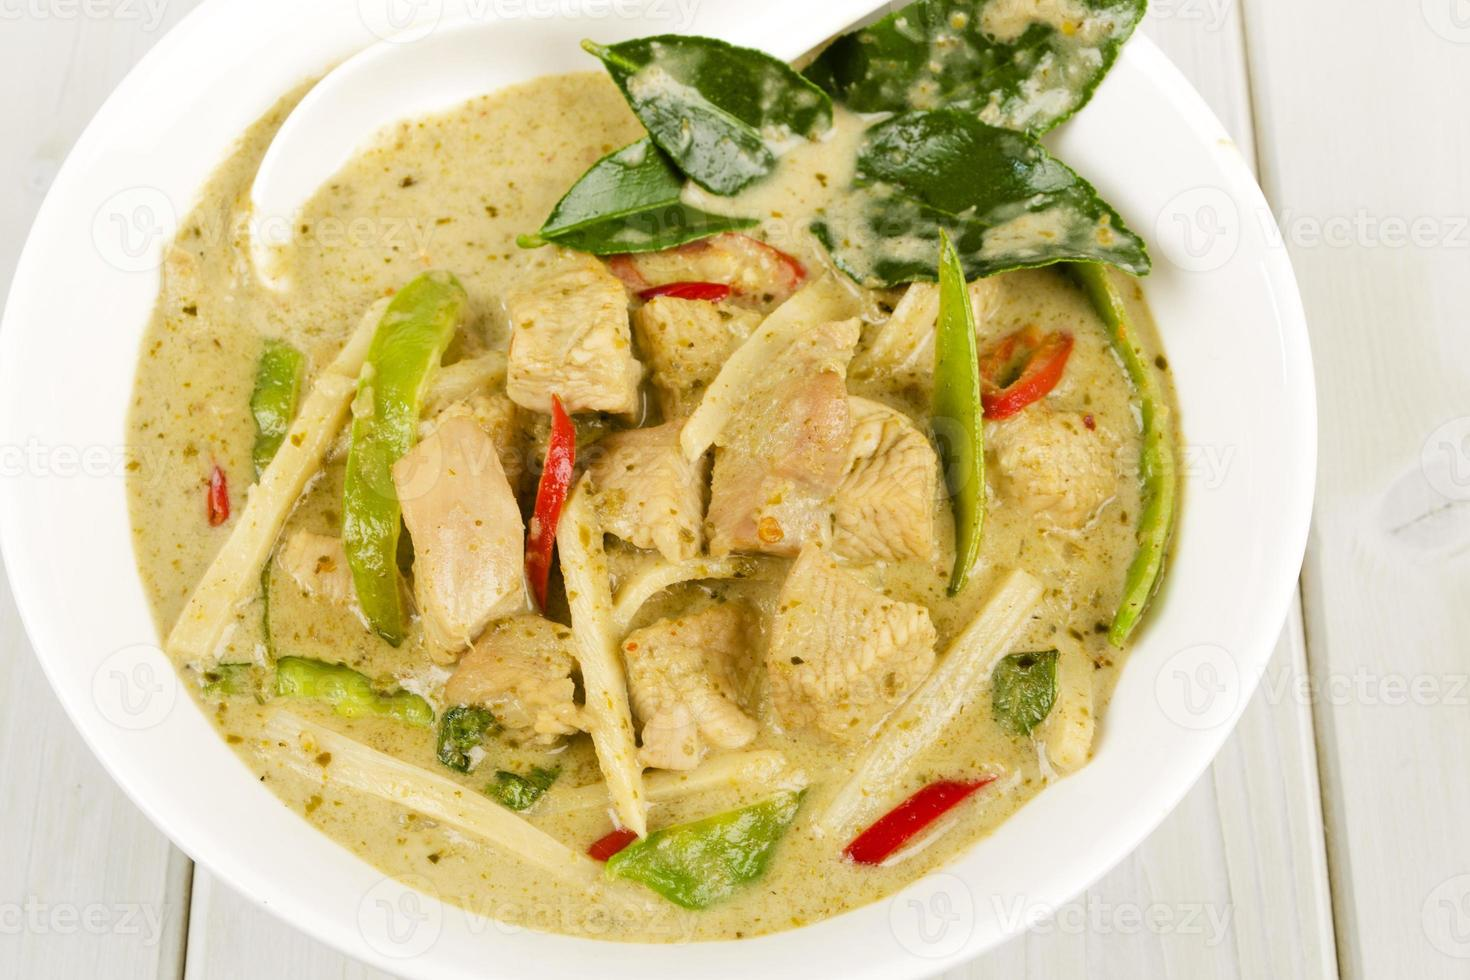 Kaeng Khiao Wan Kai - Thai Green Chicken Curry photo